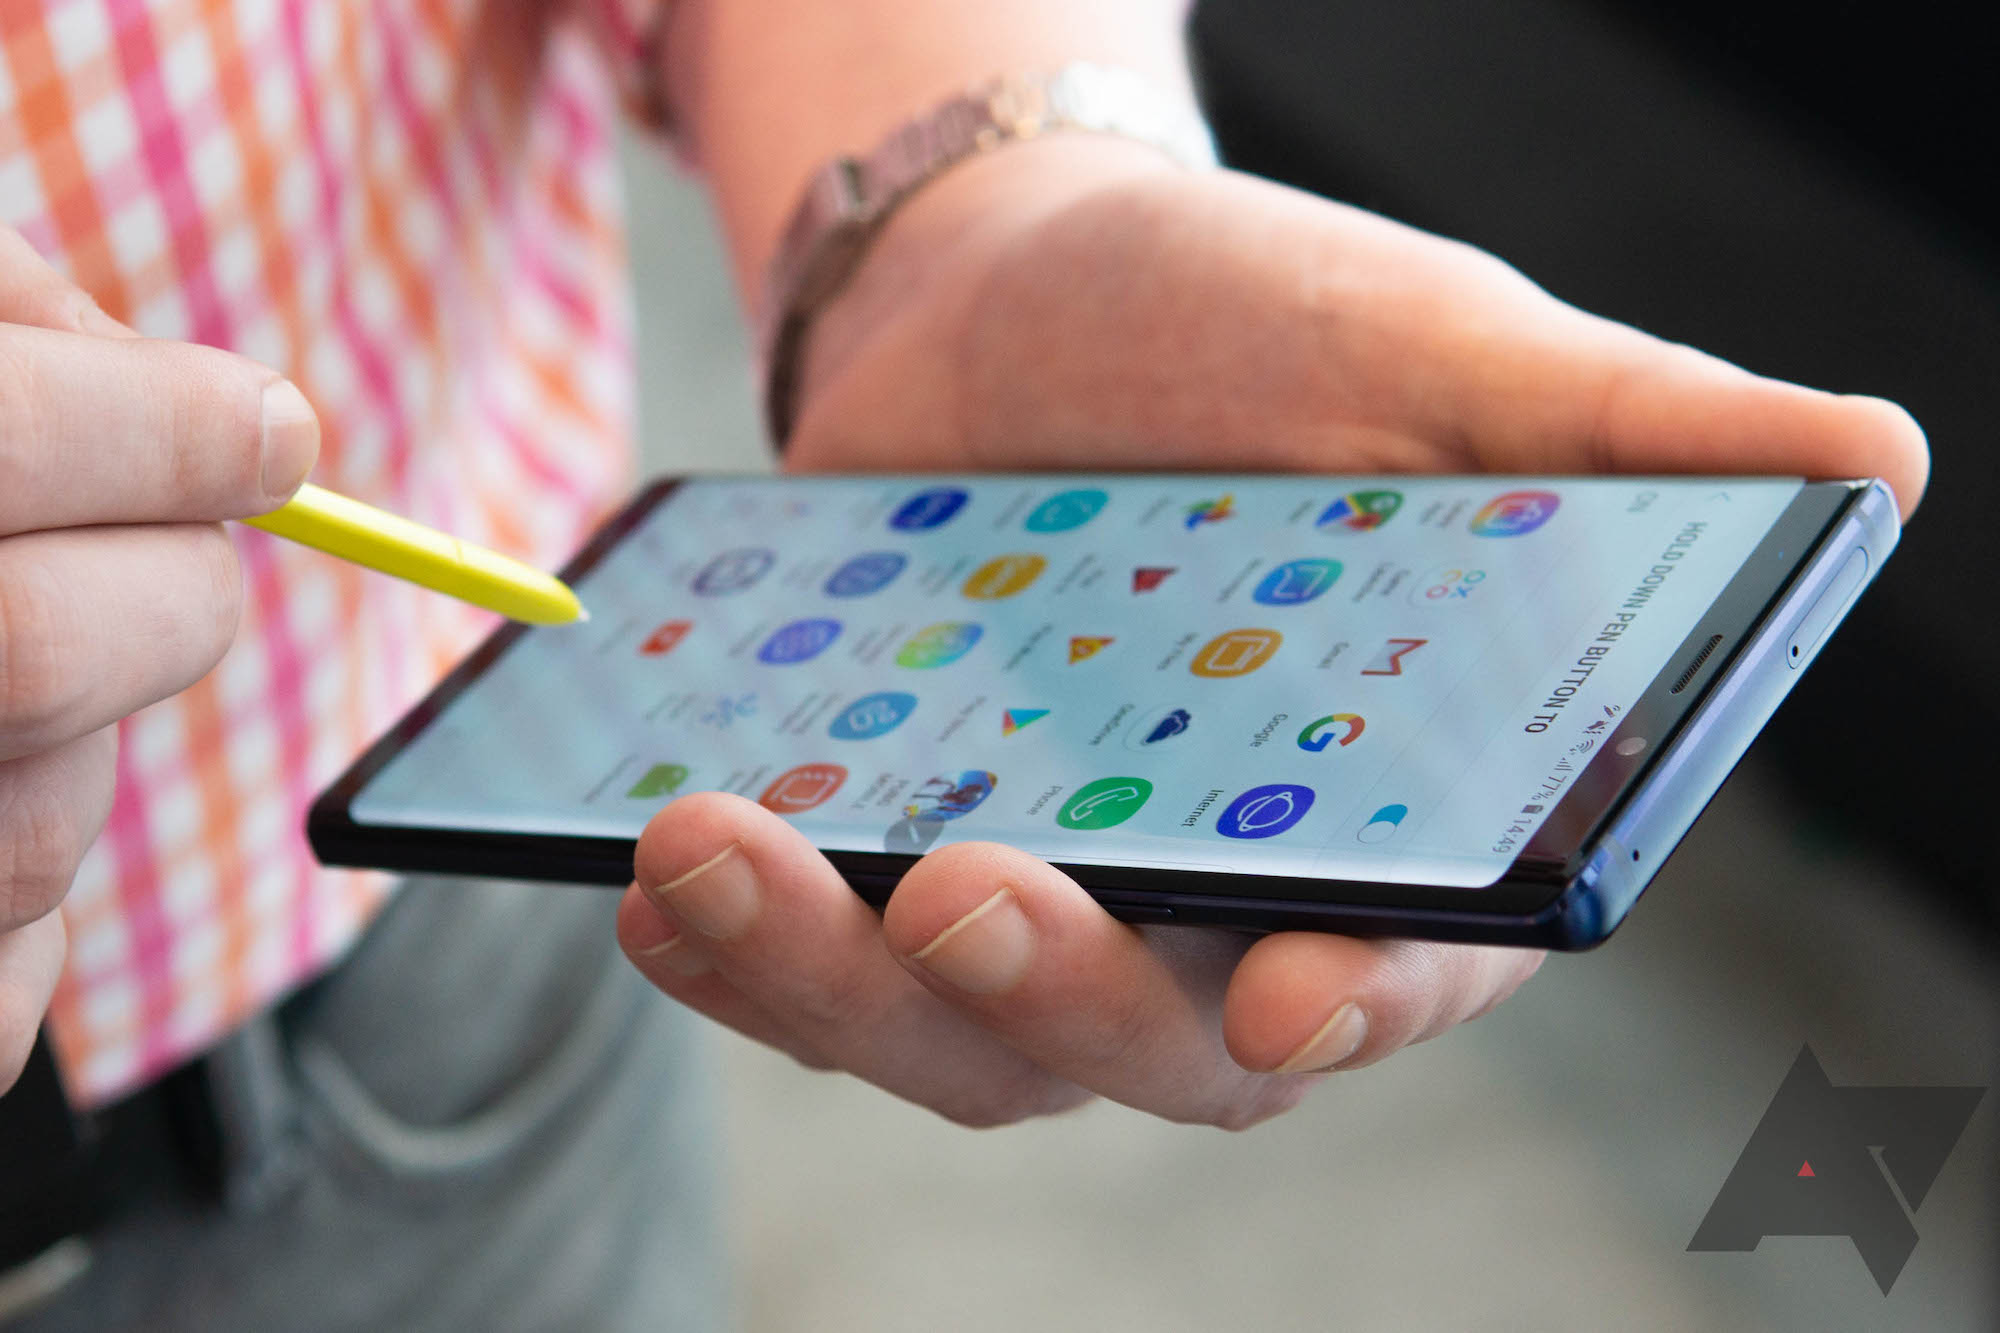 Some Samsung Galaxy Note 9 displays are exhibiting signs of light leakage